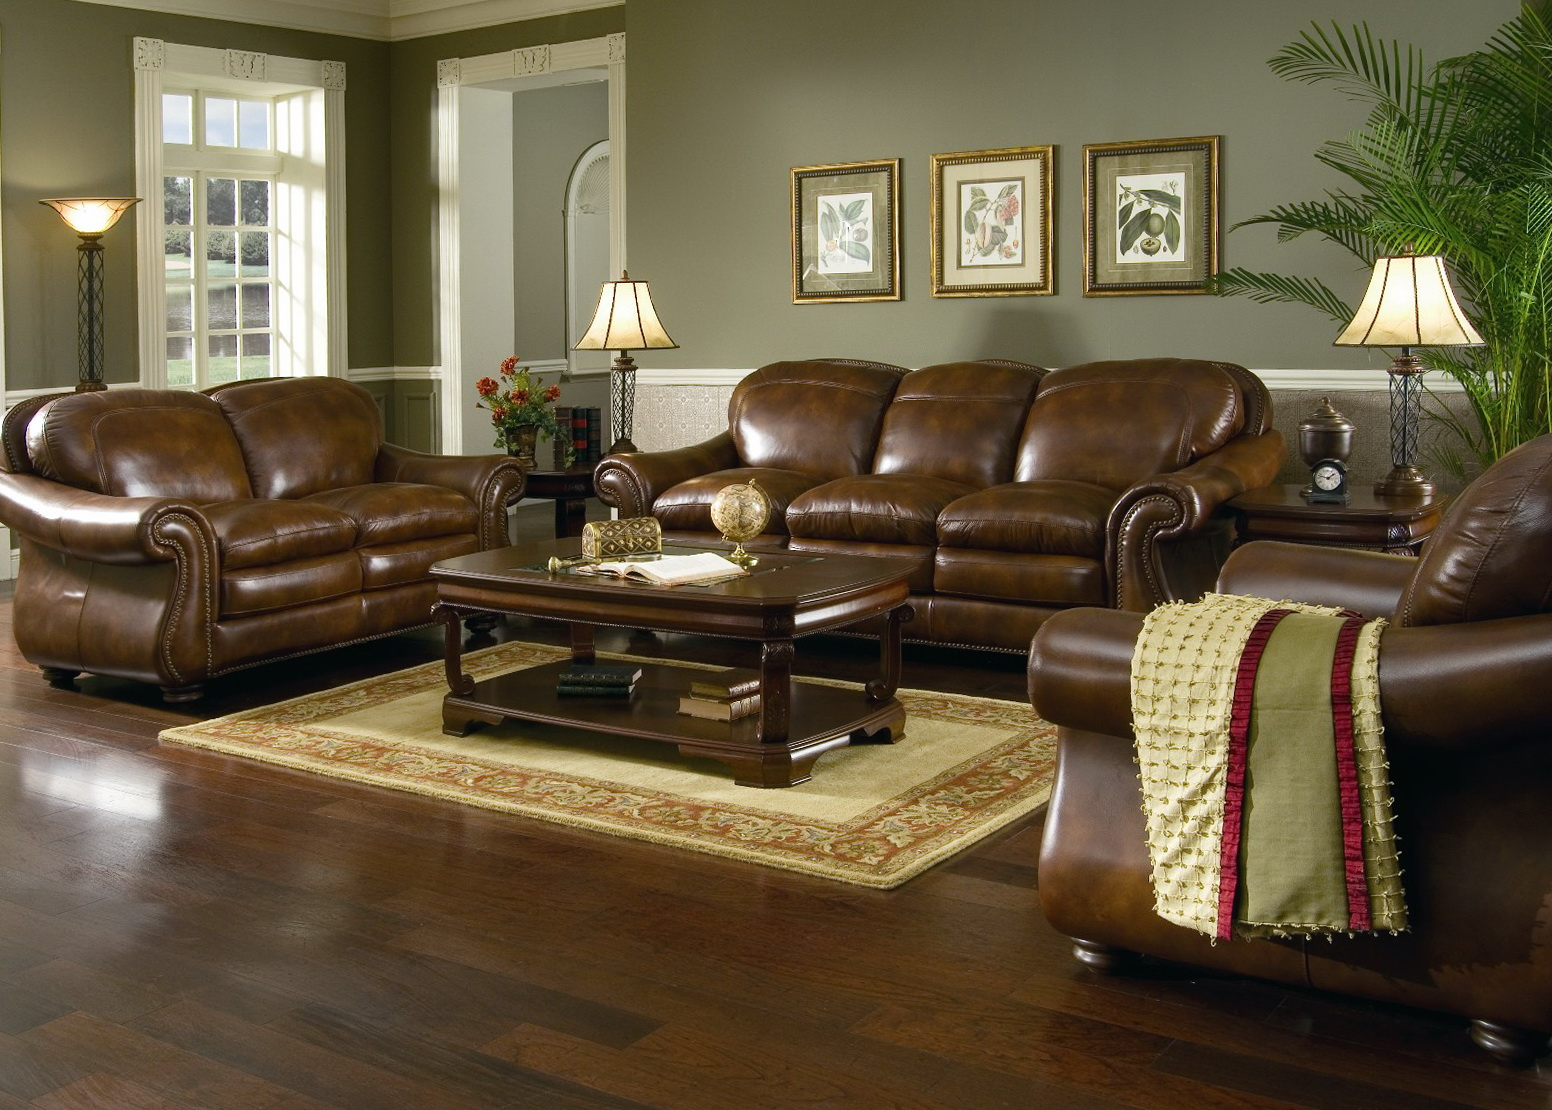 Living Room Pictures With Leather Furniture